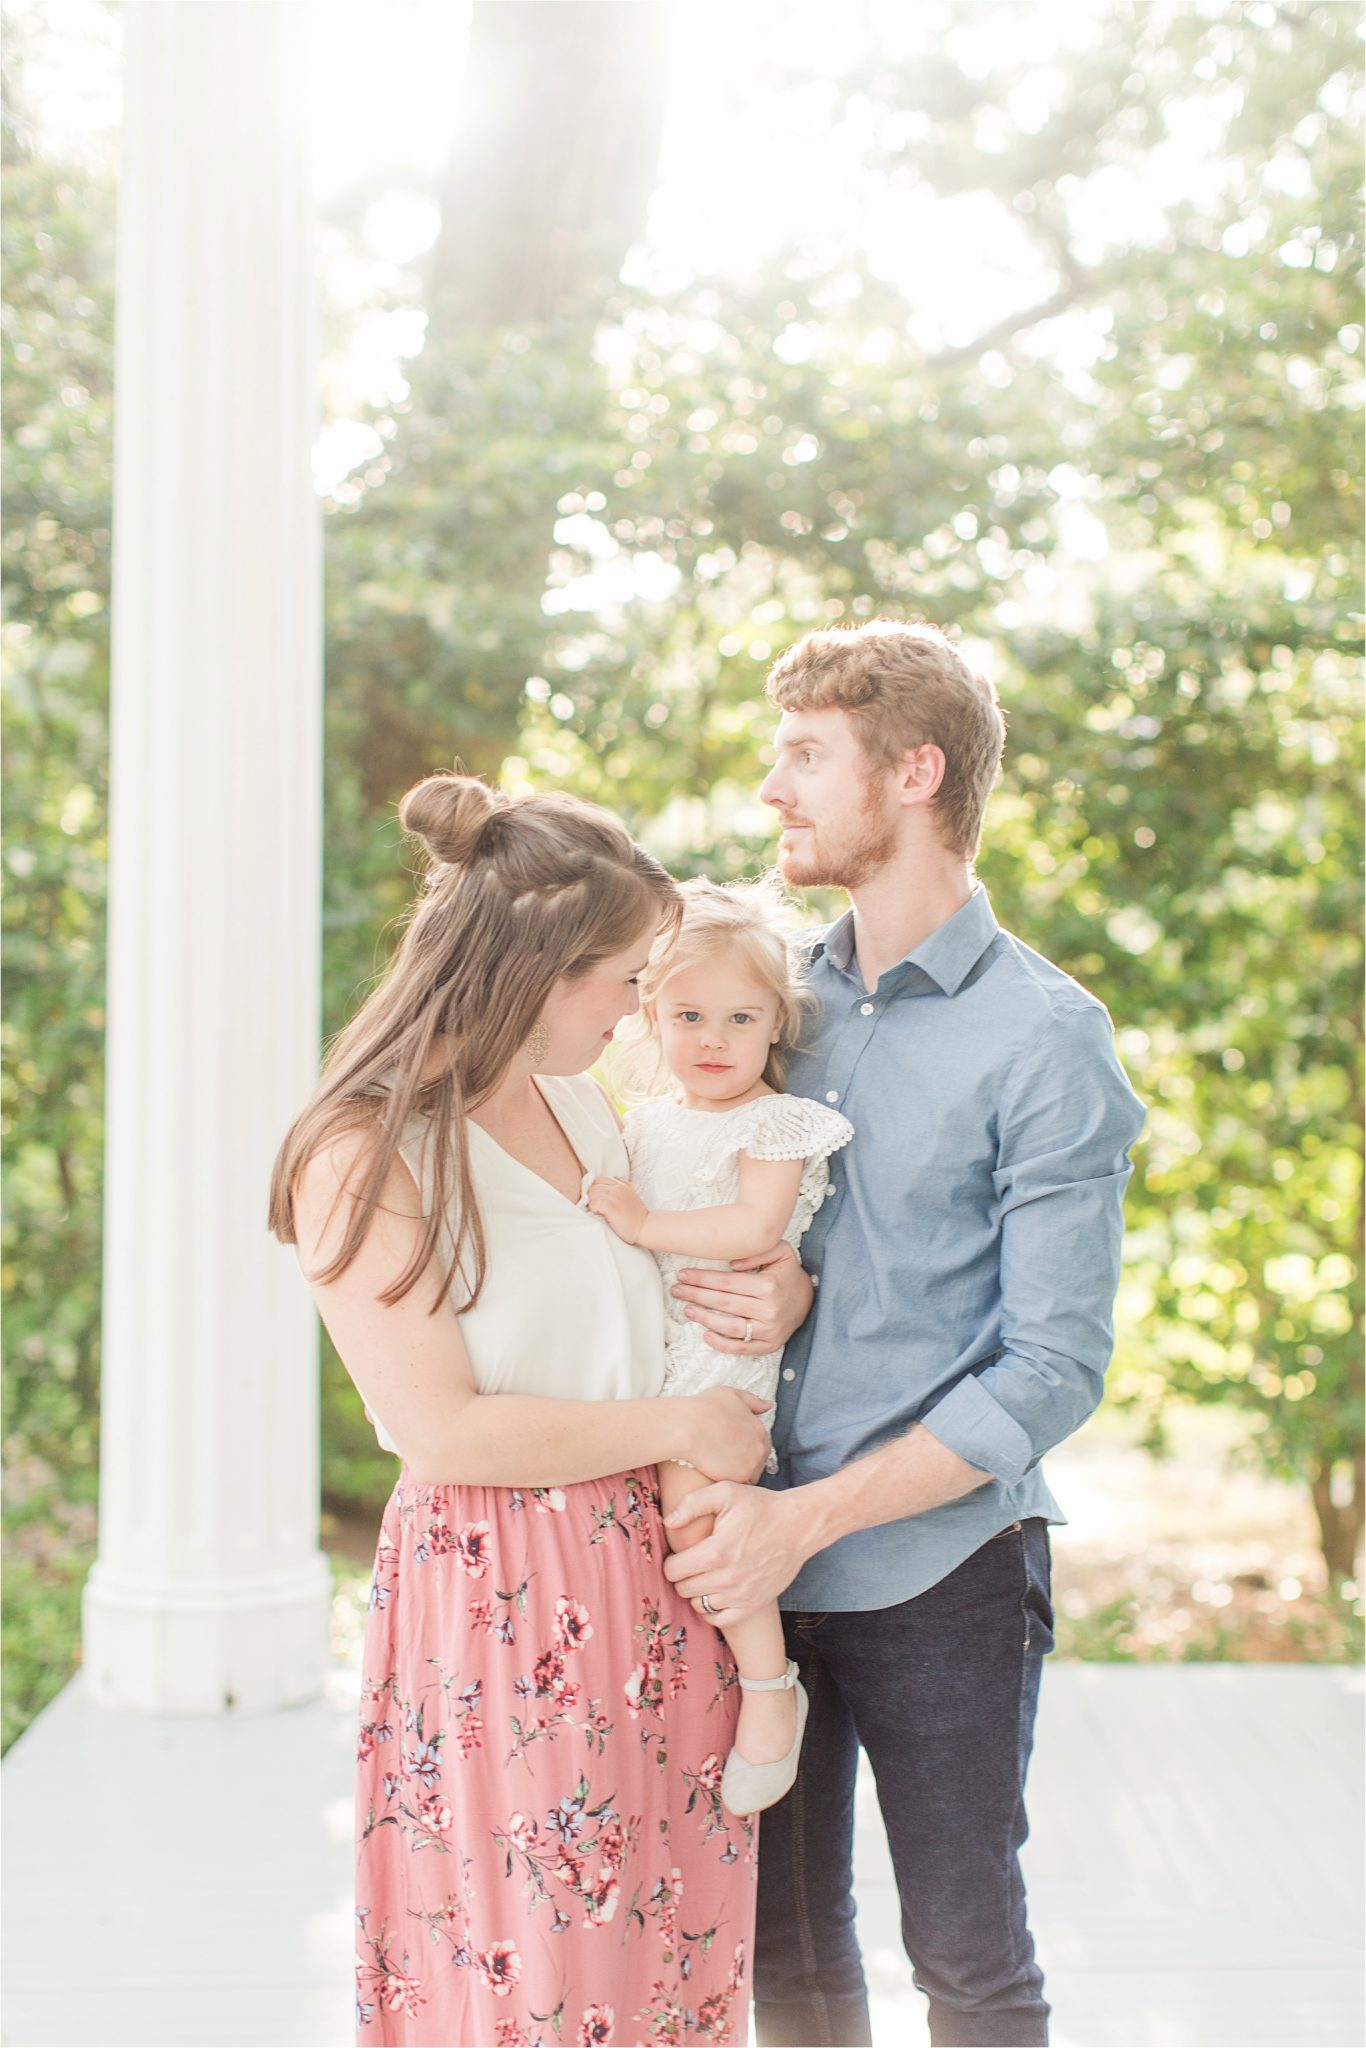 Bragg Mitchell Mansion-Family Photography-family portraits-toddler-family of three-mother father and little girl